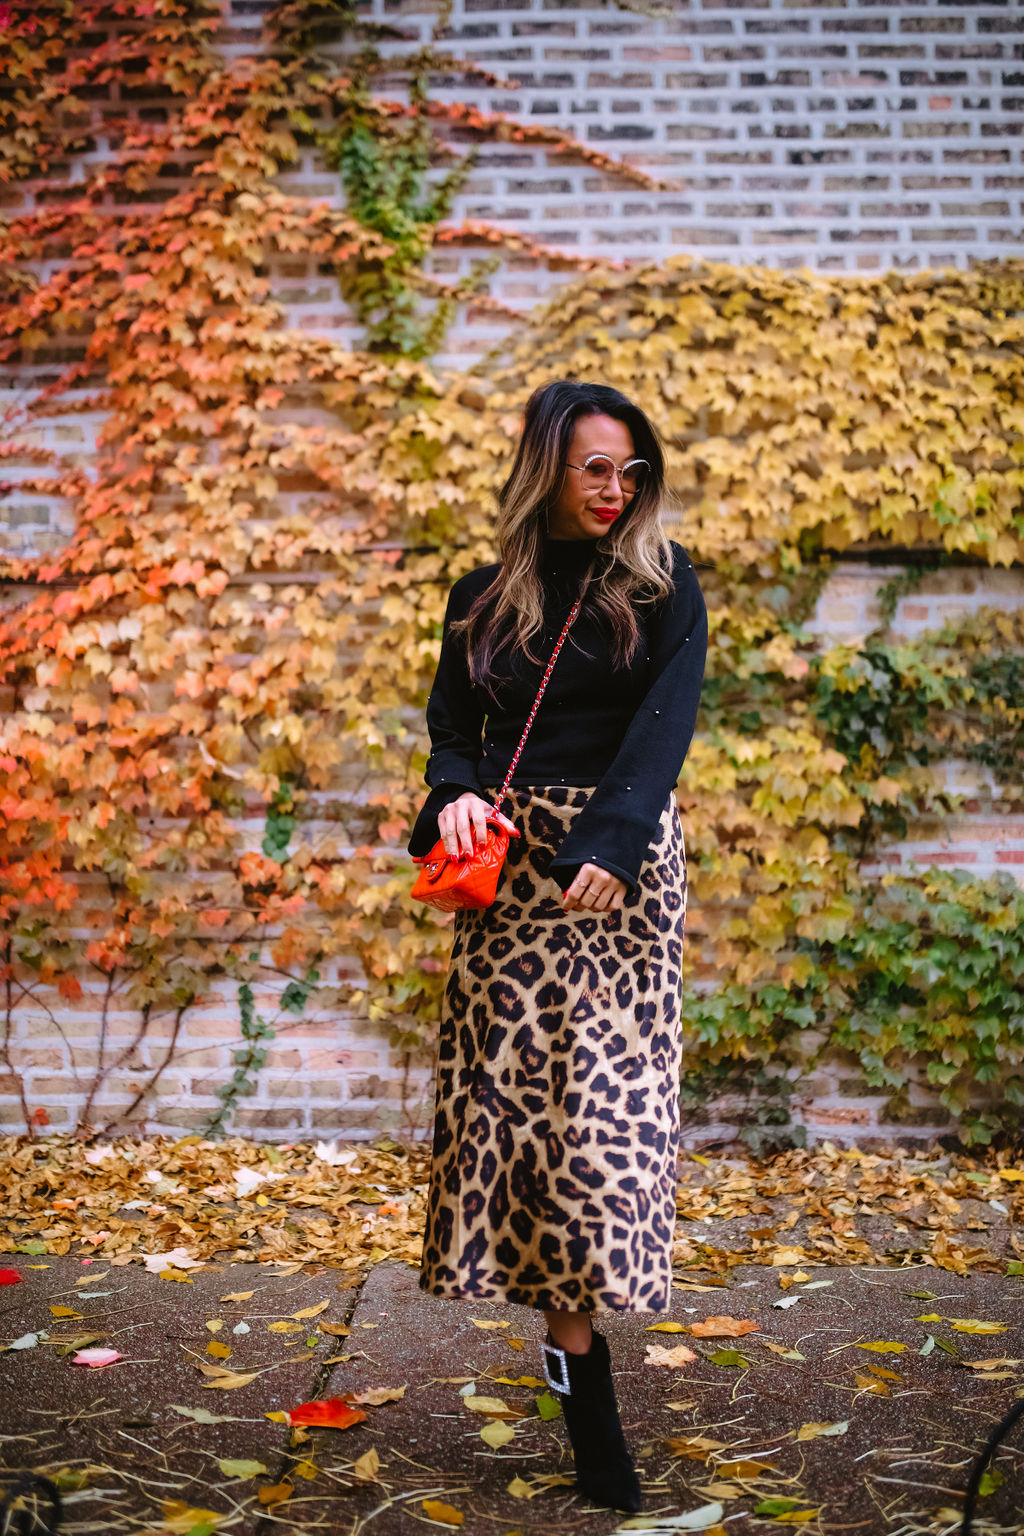 Jennifer Worman, Red Soles and Red Wine, revolve finds under $150, sweaters from revolve all under $150, Fall styles, fall outfit ideas, sweaters under $150, best sweaters under $150, 9 must-have sweaters under $150, revolve babe, fall 2019 must haves, fall 2019 style, mom style, chicago blogger